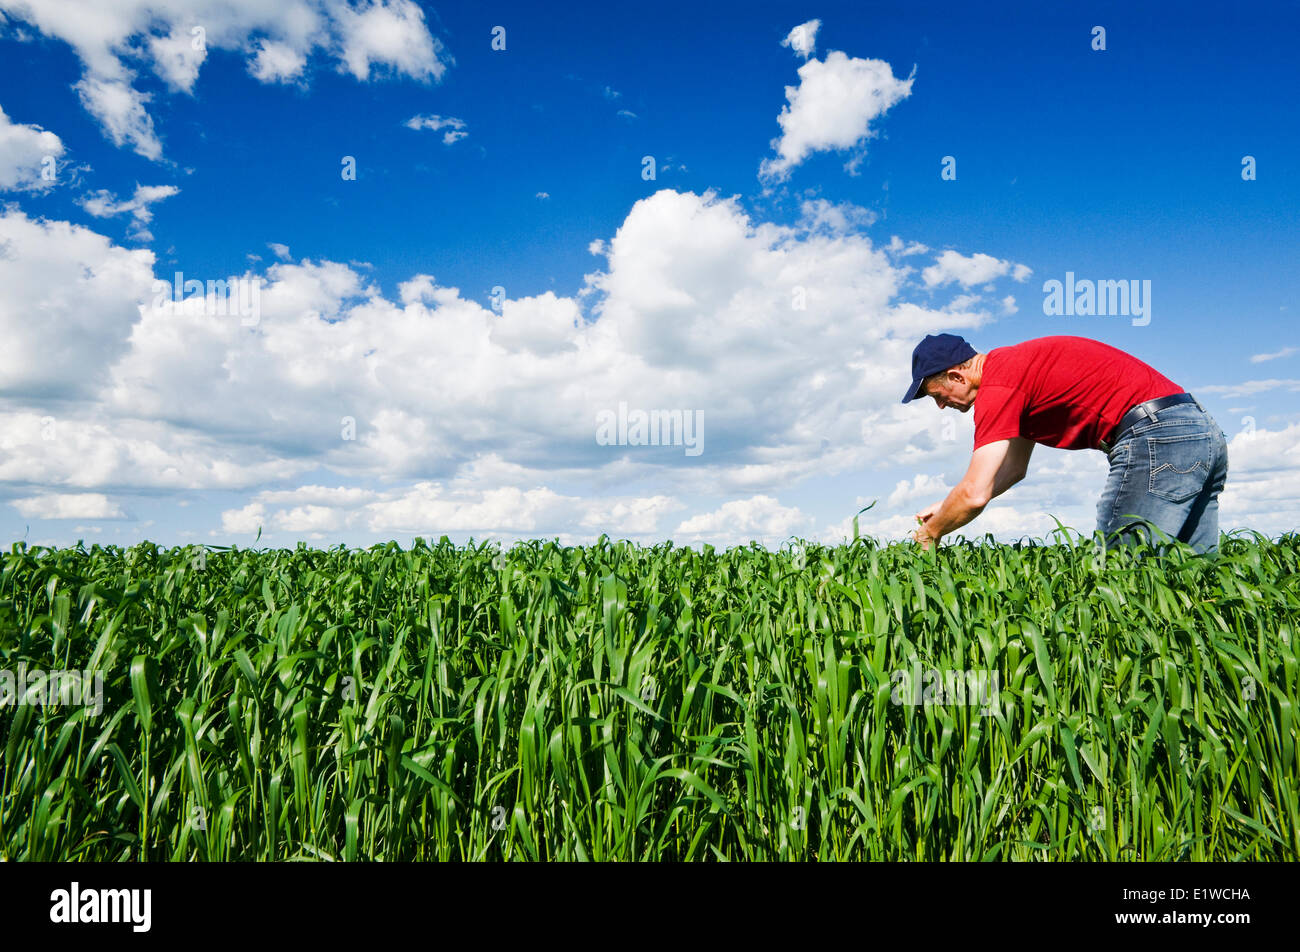 a man scouts an oat field, near Dugald, Manitoba, Canada - Stock Image